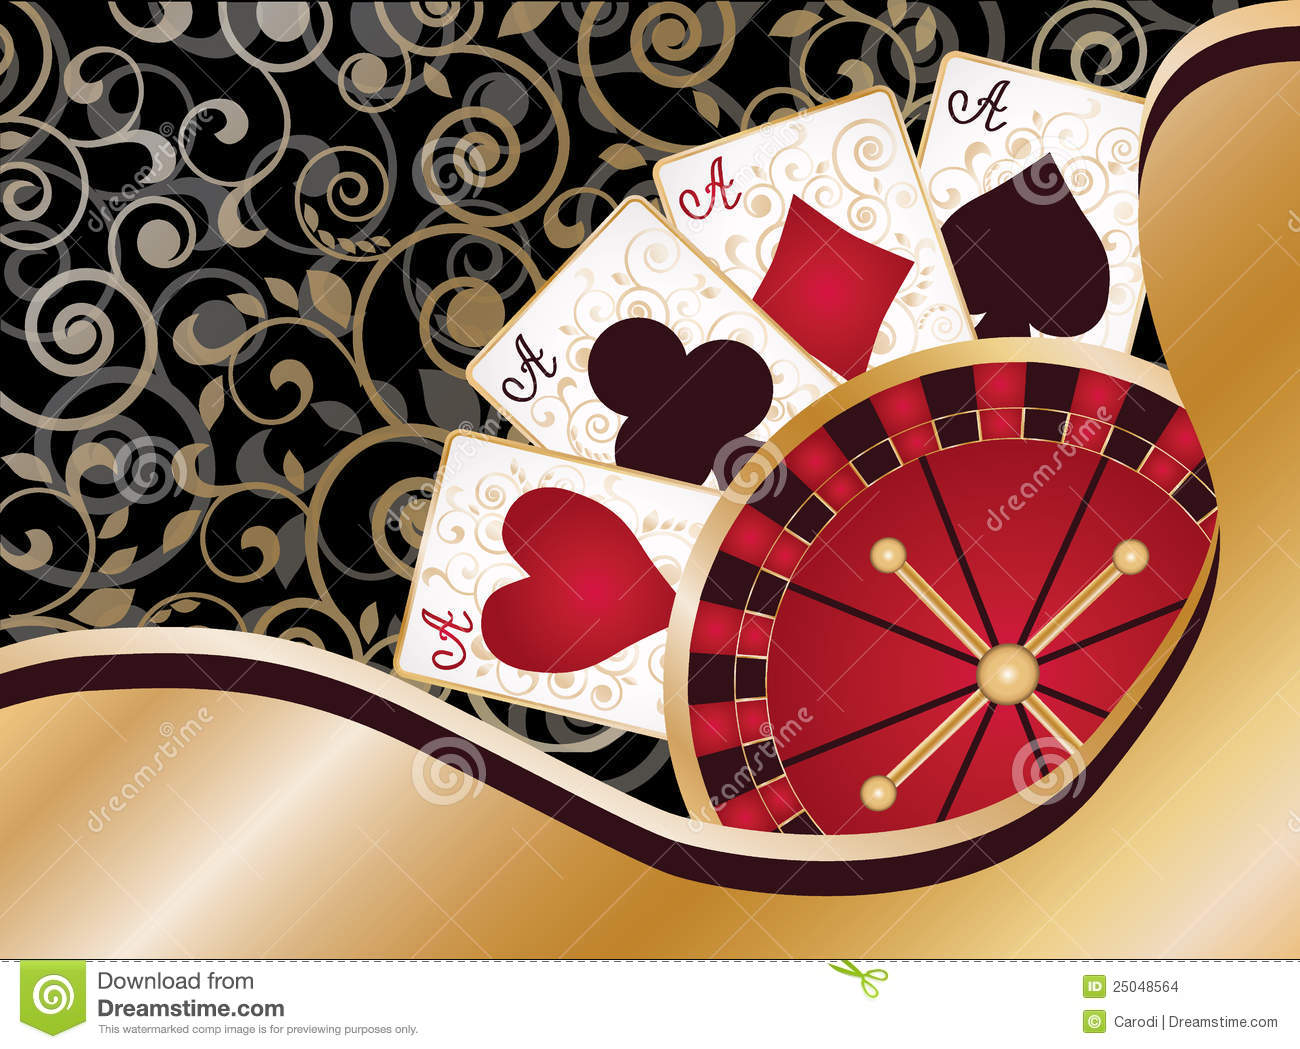 Image result for poker casino